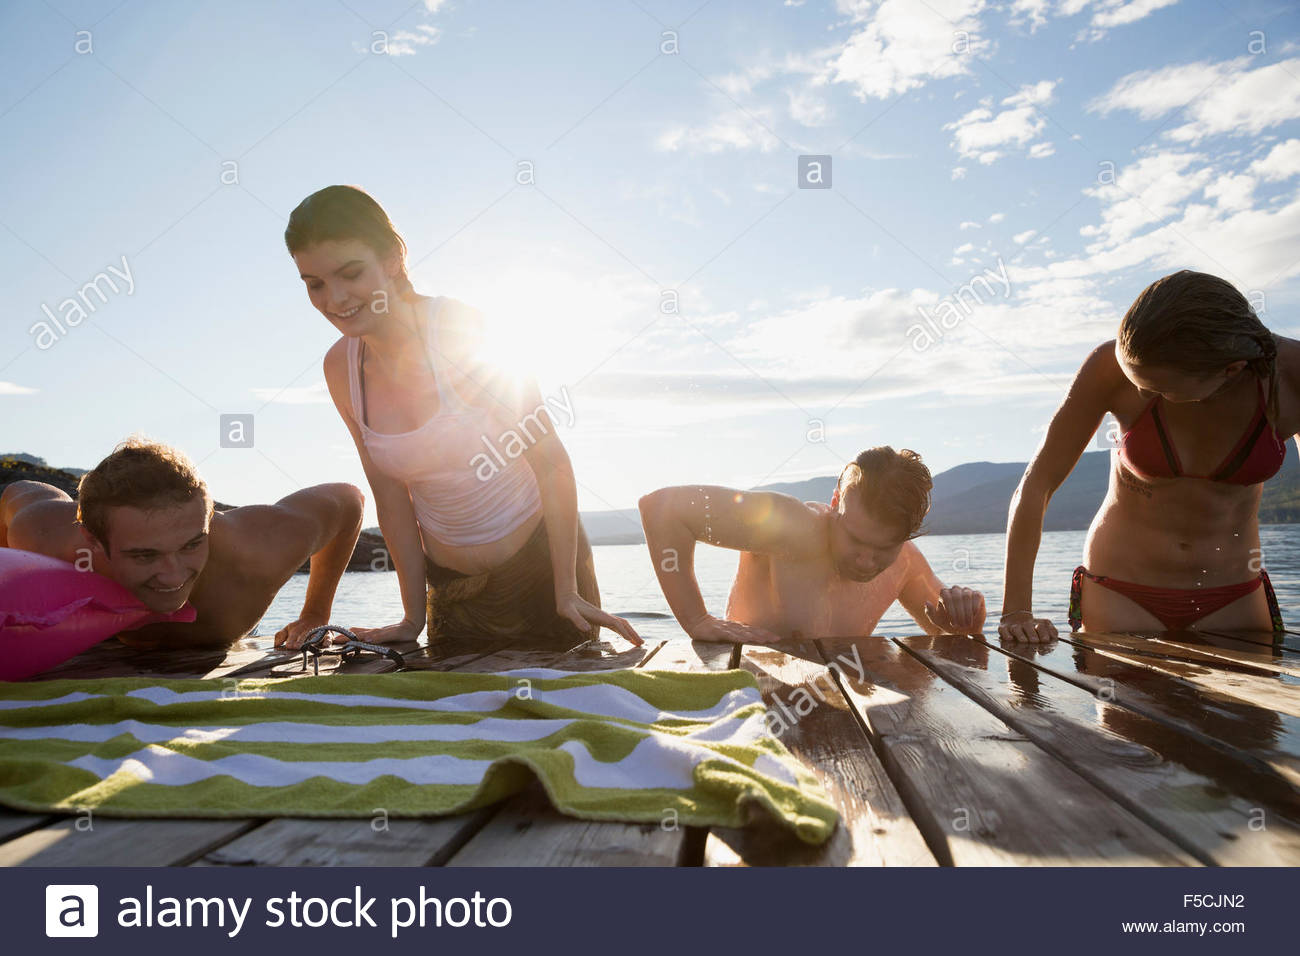 Young friends climbing onto lake dock - Stock Image